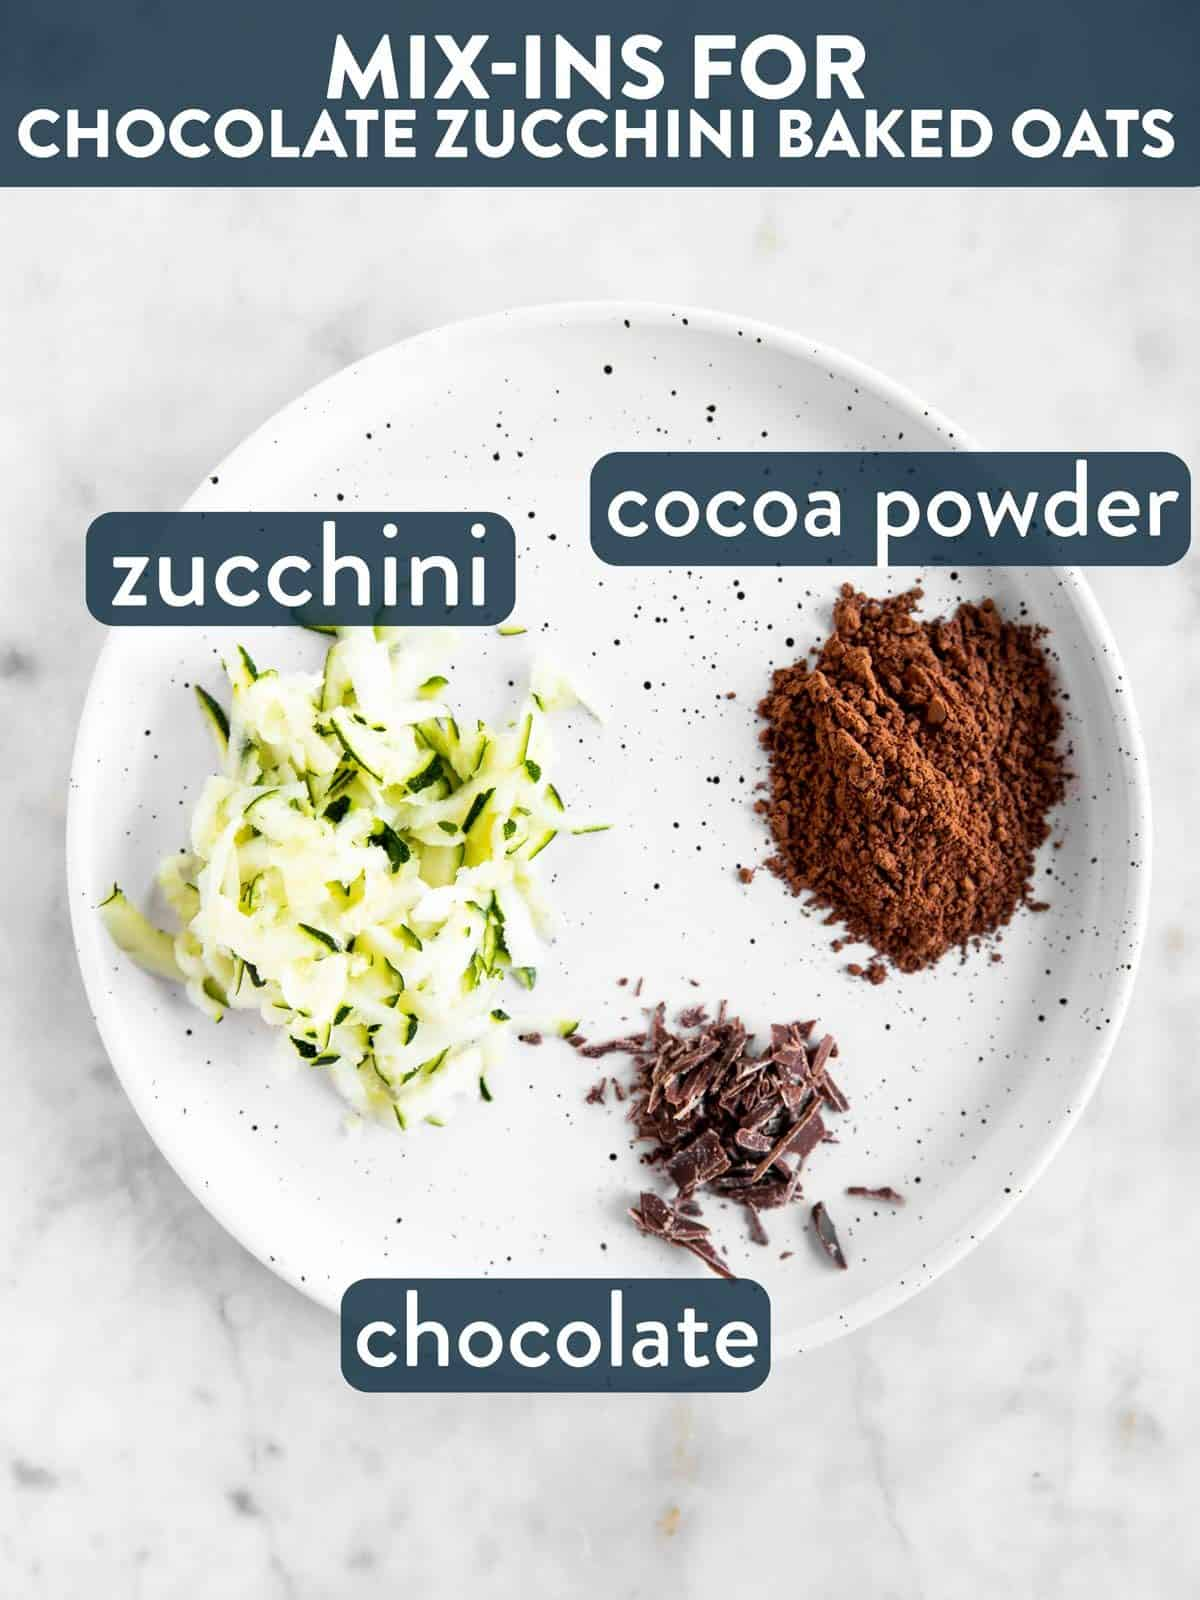 mix-ins for chocolate zucchini baked oats on white plate with text labels